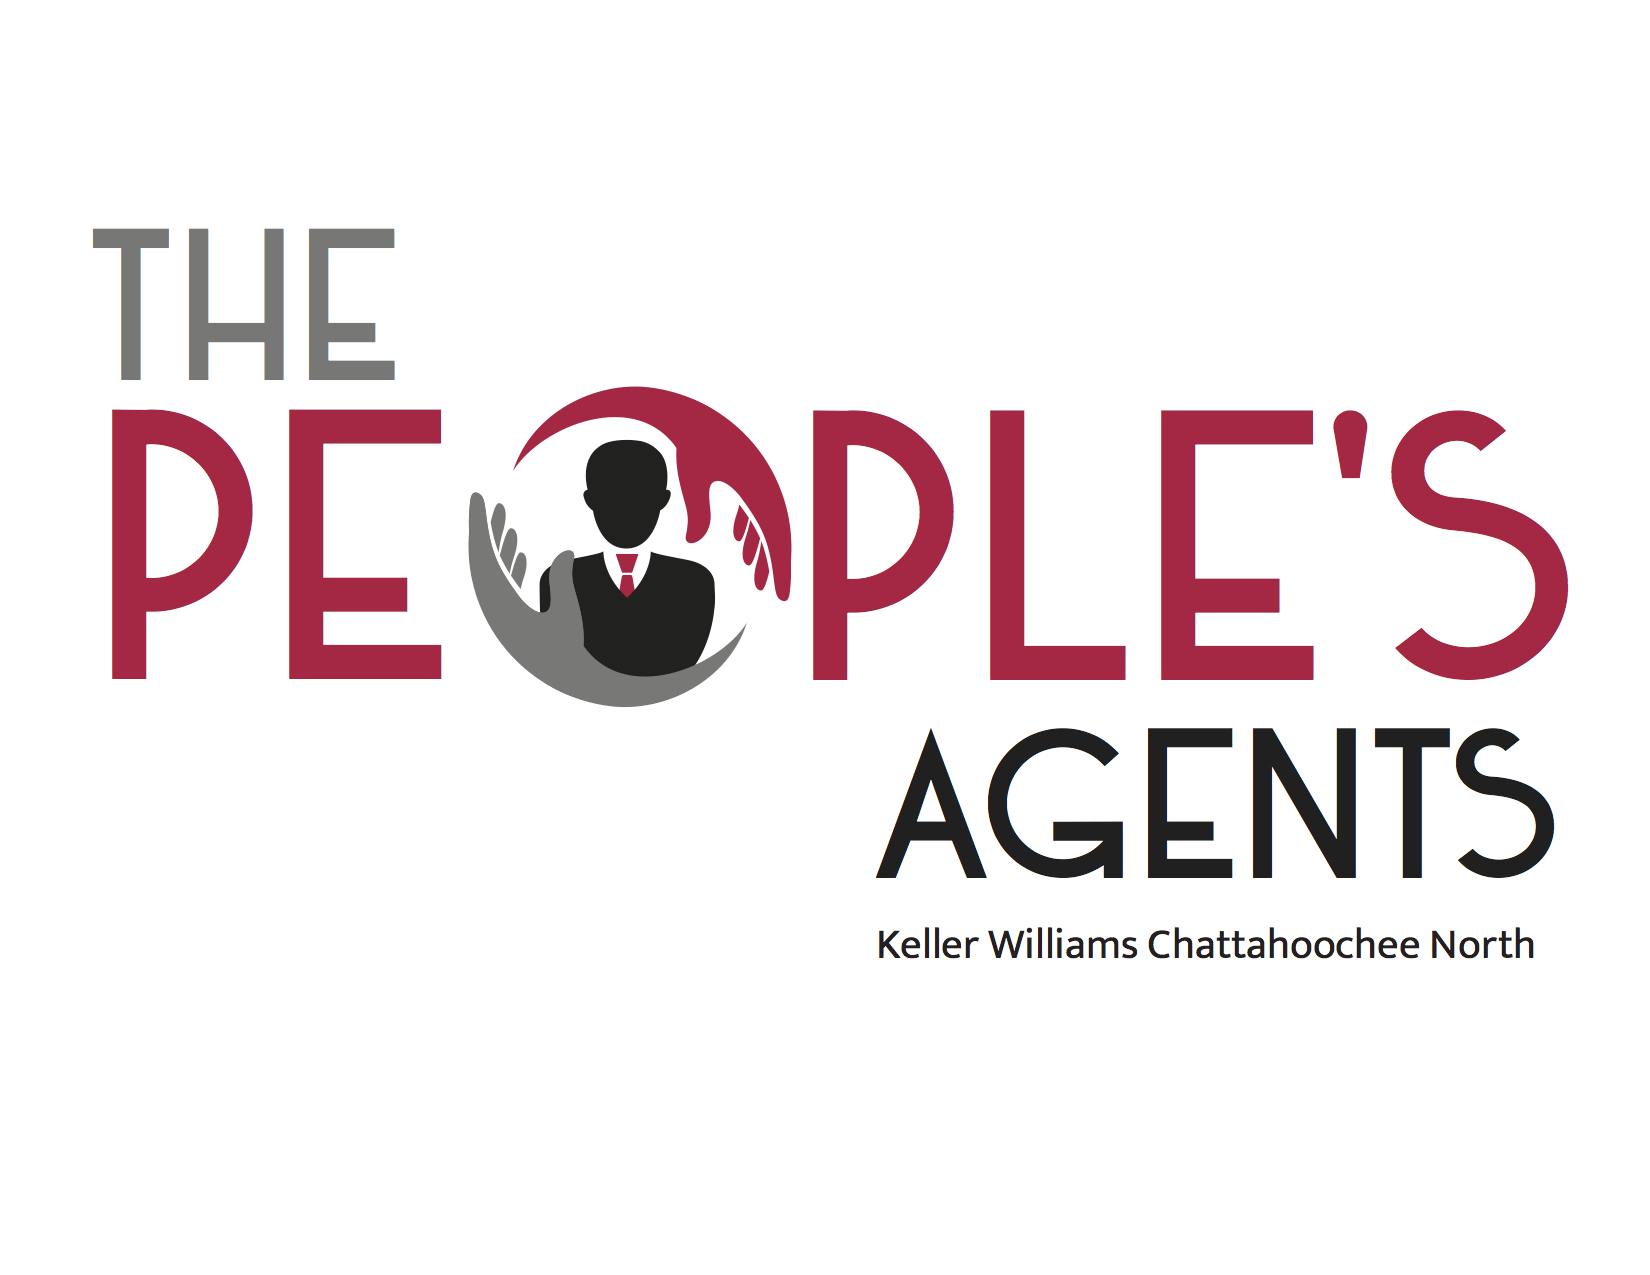 The Peoples Agent logo